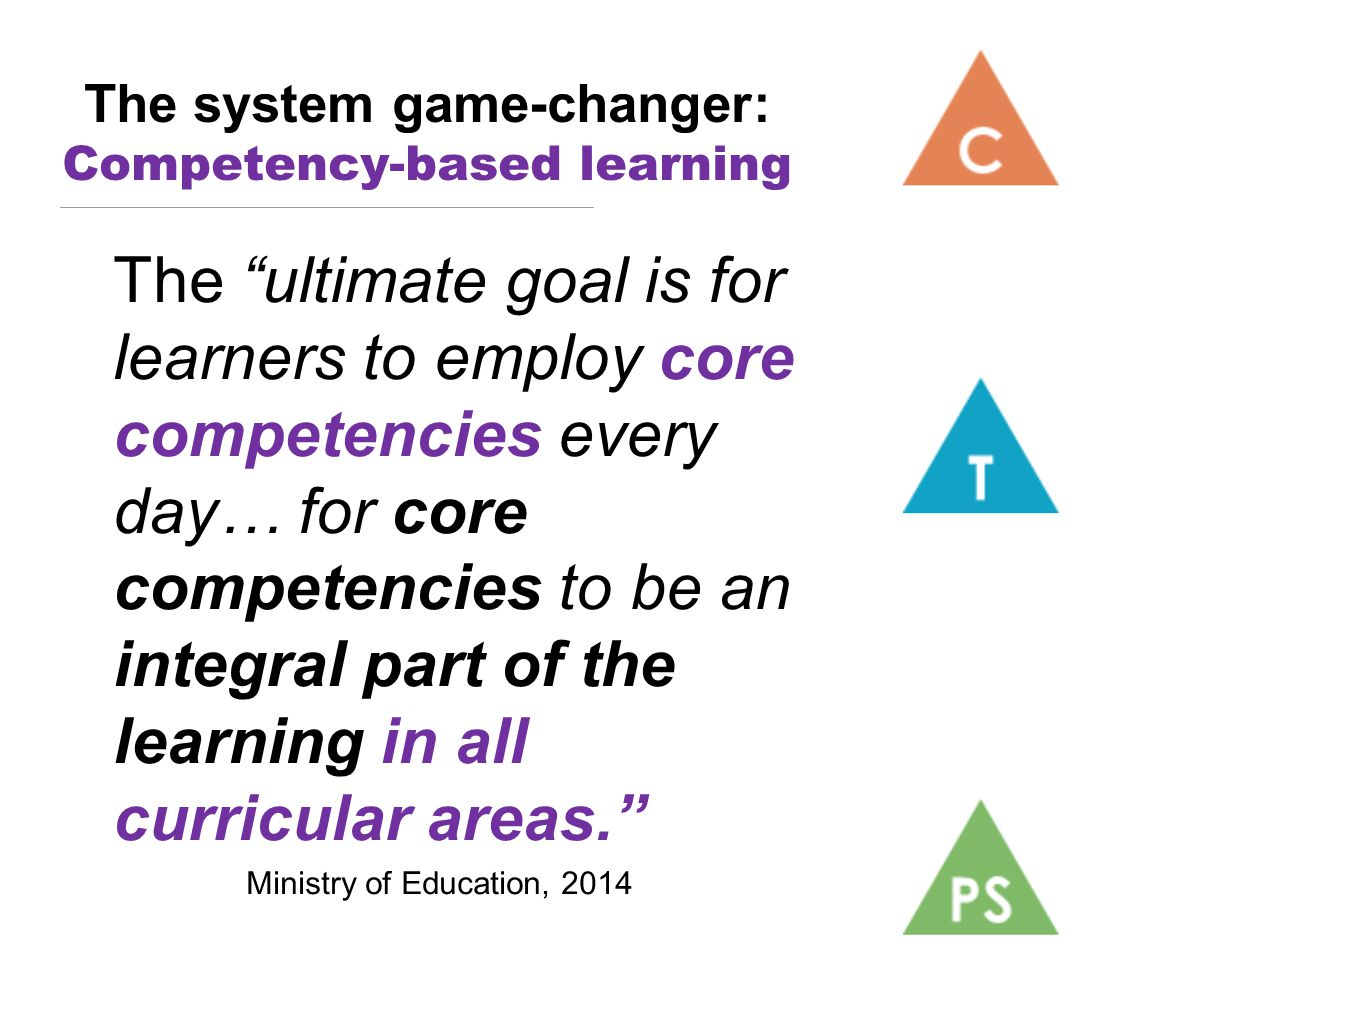 The system game-changer: Competency-based learning The ultimate goal is for learners to employ core competencies every day… for core competencies to be an integral part of the learning in all curricular areas. Ministry of Education, 2014